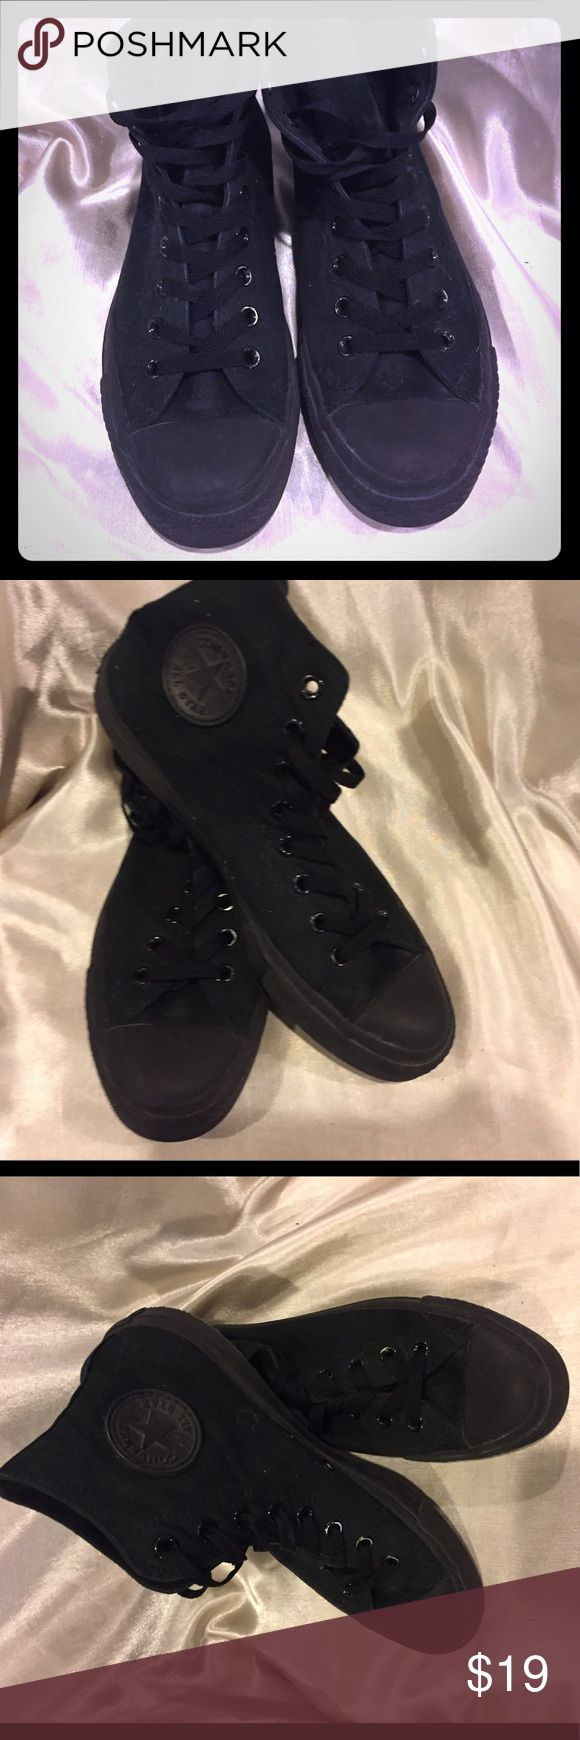 Converse Chuck Taylor Black Canvas Sneakers Size 8 Converse Black Canvas Chuck Taylors size 8 These shoes show signs of wear price reflects Converse Shoes Sneakers